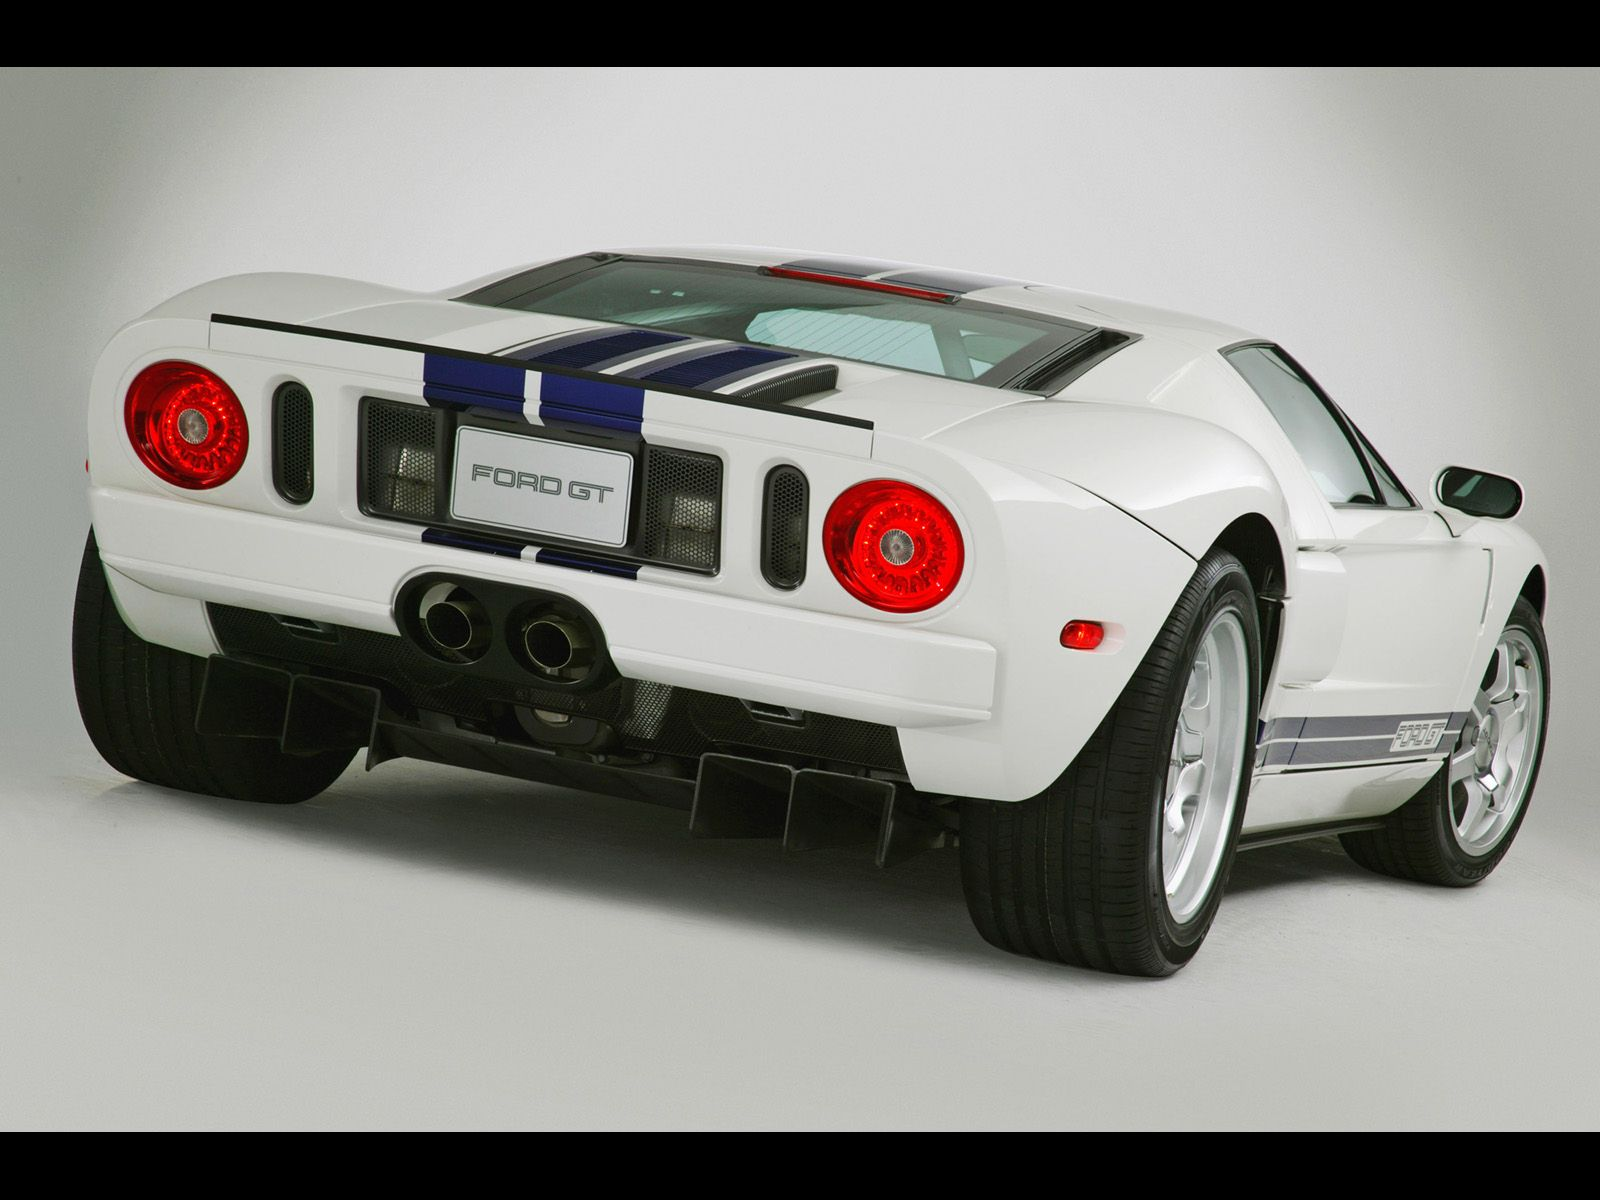 2005 Ford Gt White Rear Angle Studio 1600x1200 Wallpaper